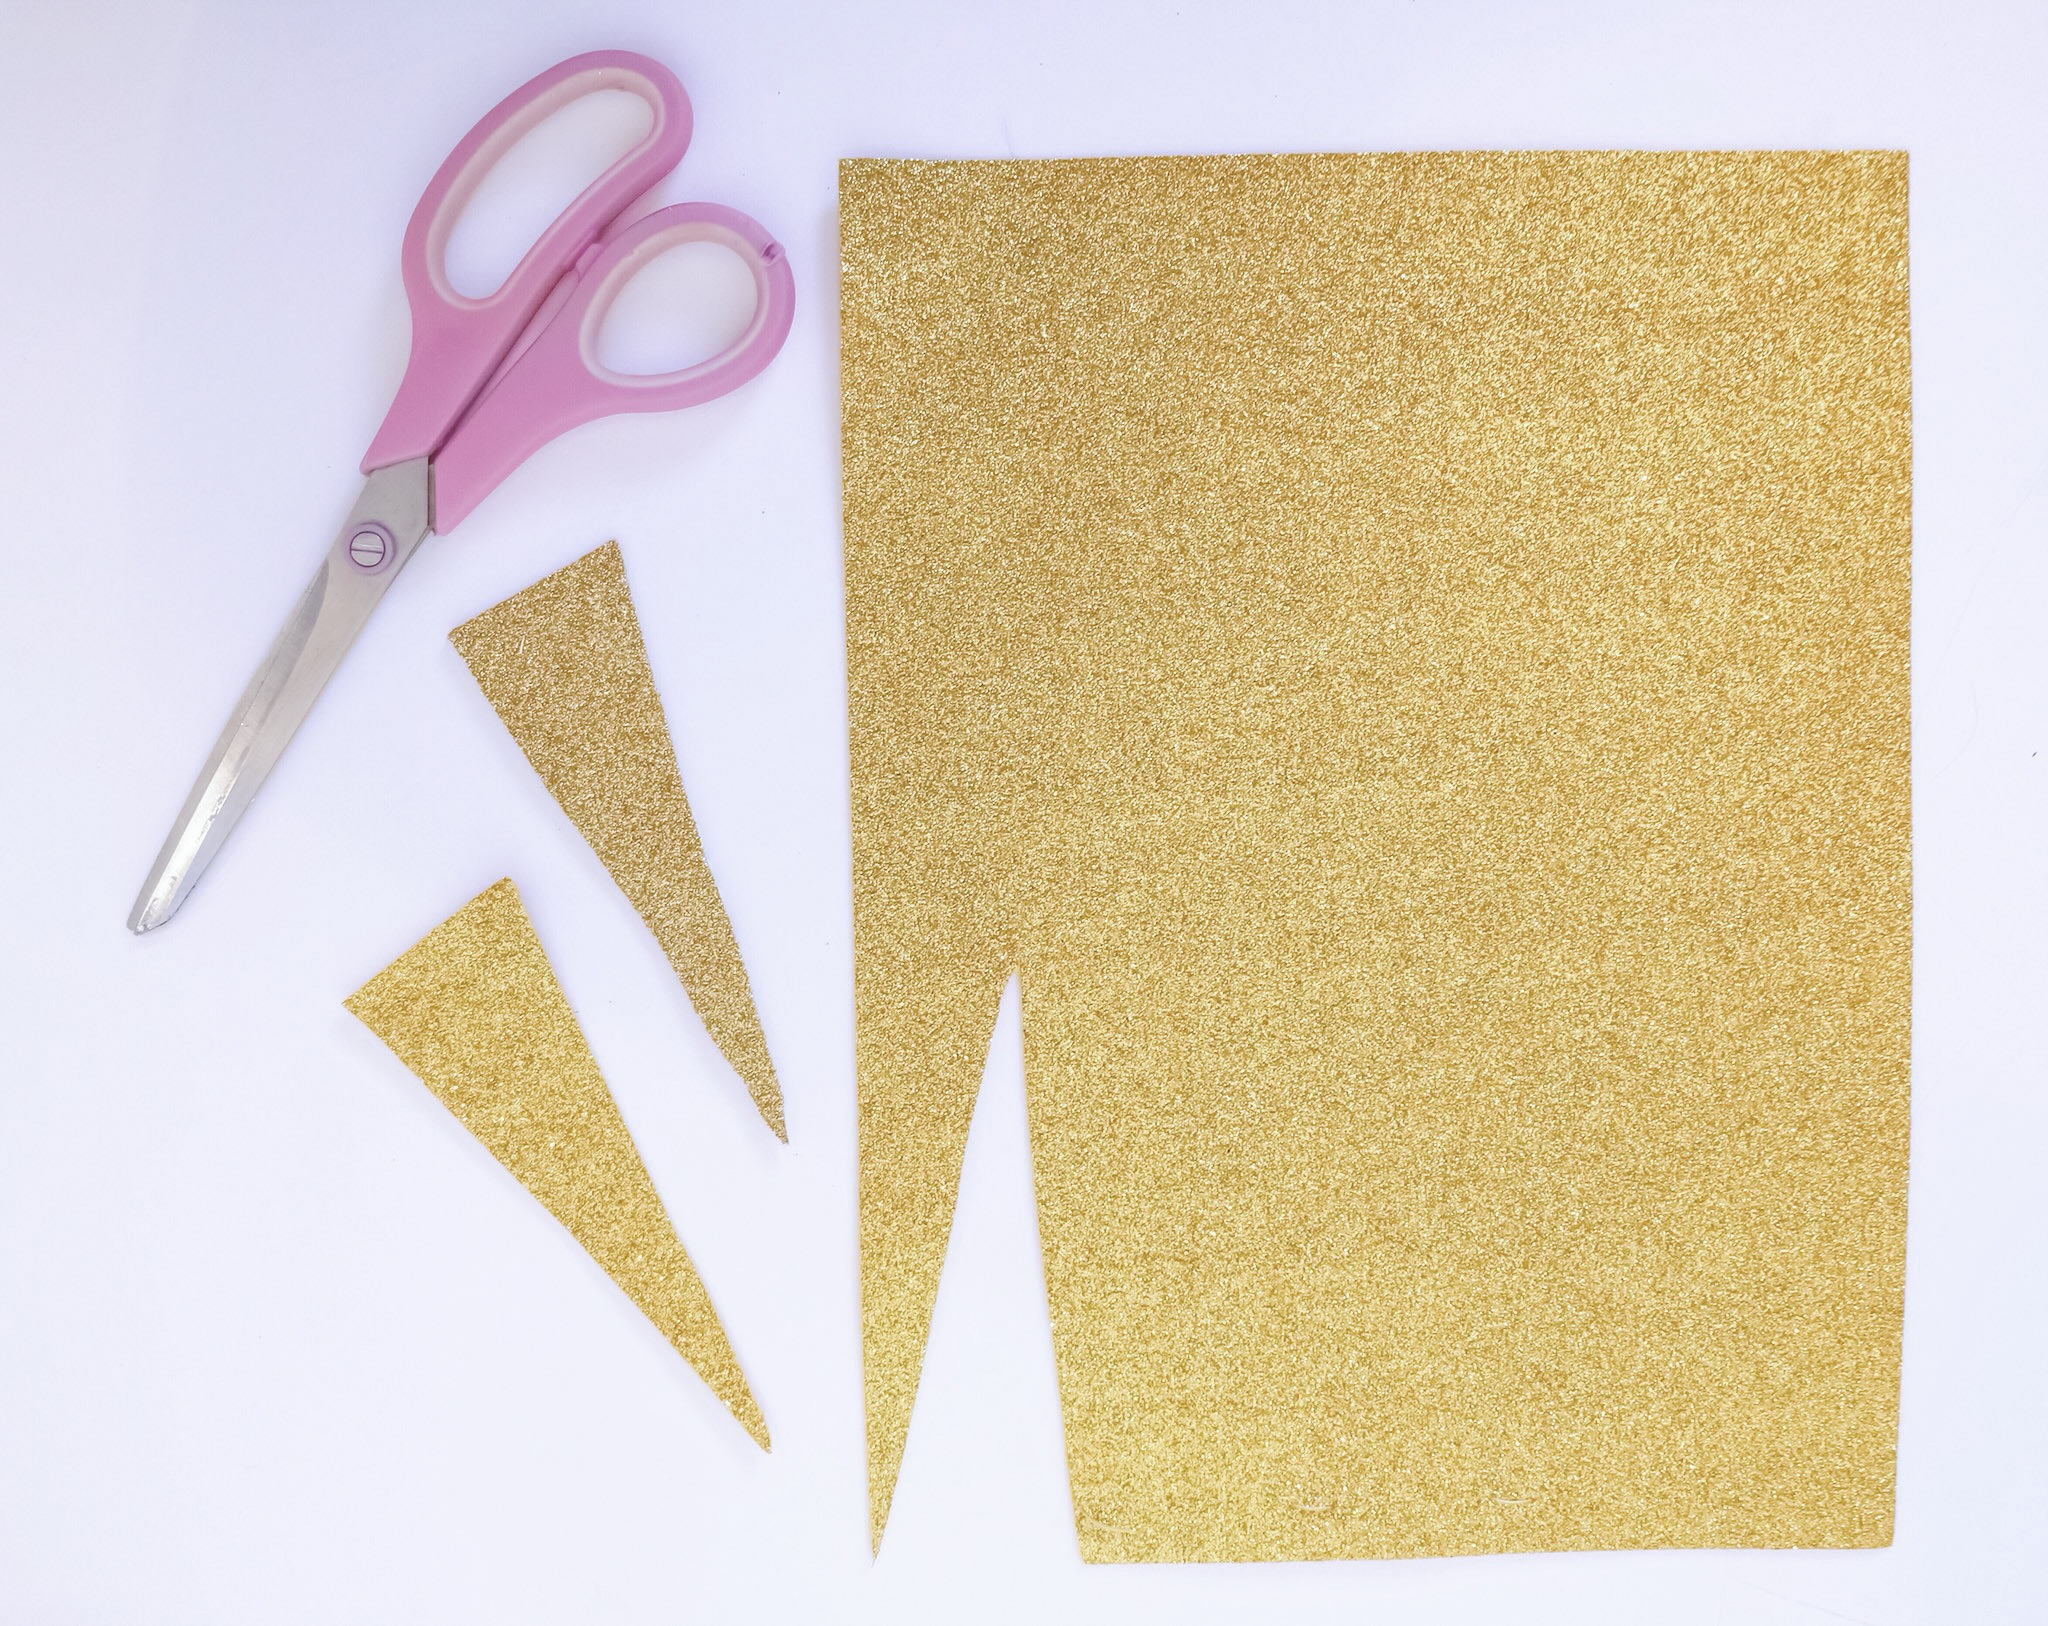 Cut glitter scrapbook paper for unicorn horn